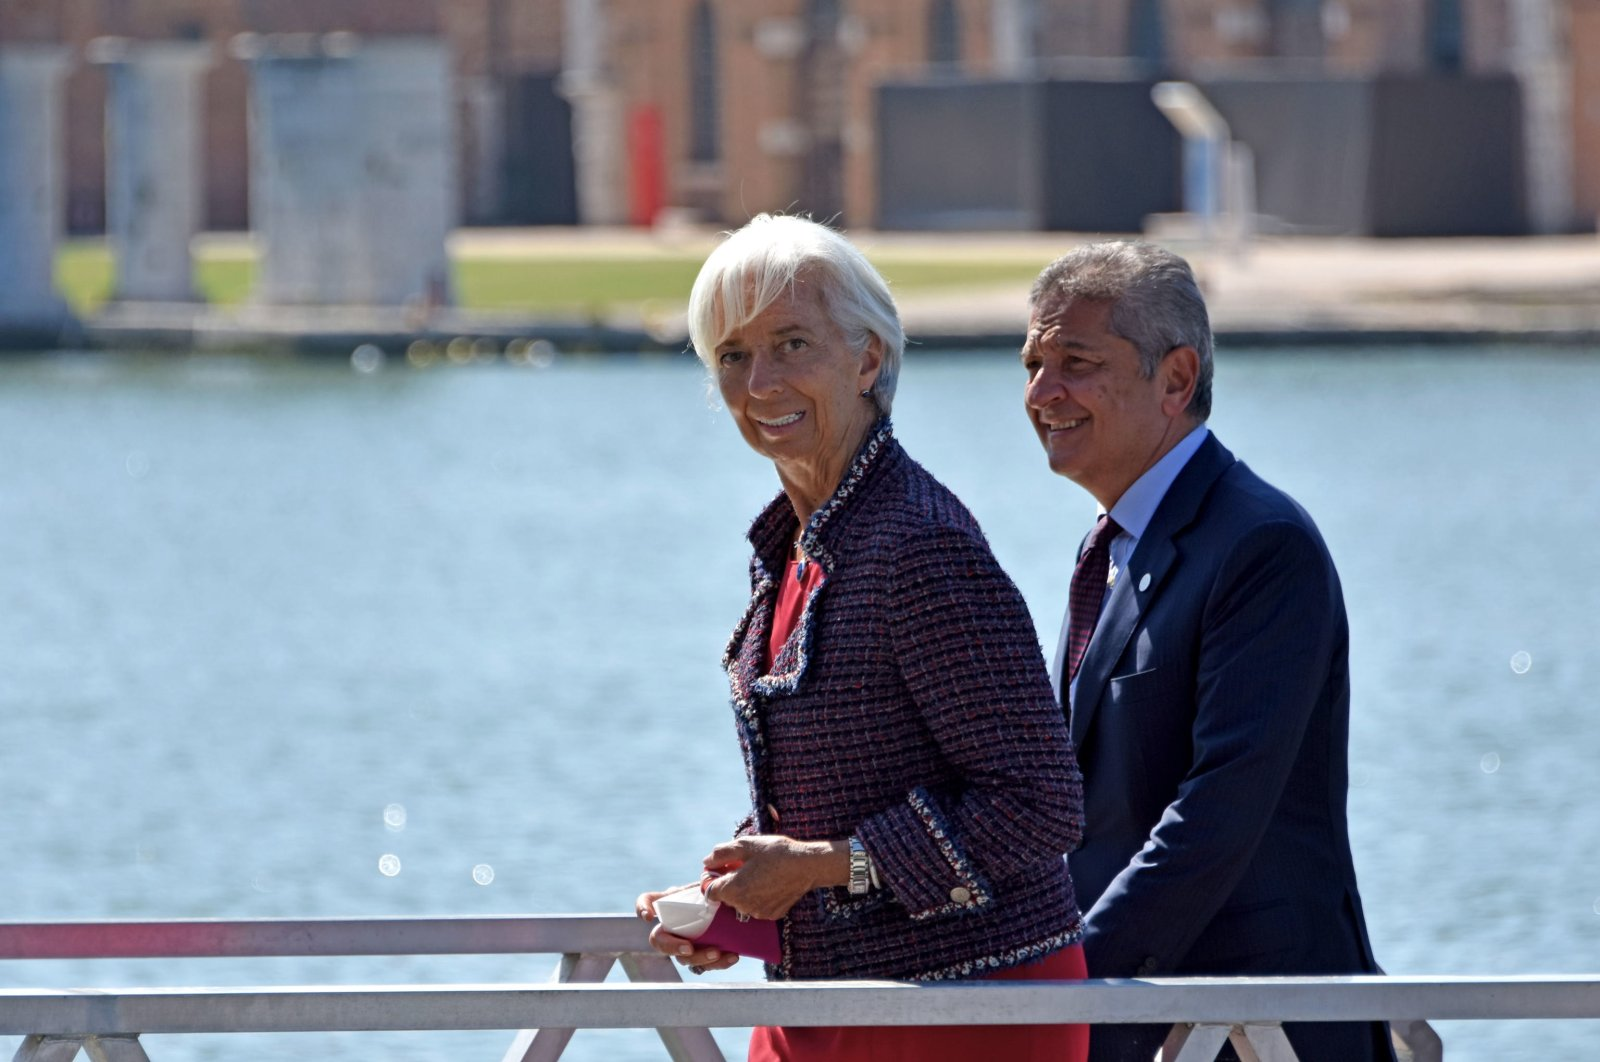 European Central Bank (ECB) President Christine Lagarde (L) arrives at the Arsenal for the G-20 Finance Ministers and Central Bank Governors Meeting in Venice, Italy, July 9, 2021. (EPA Photo)